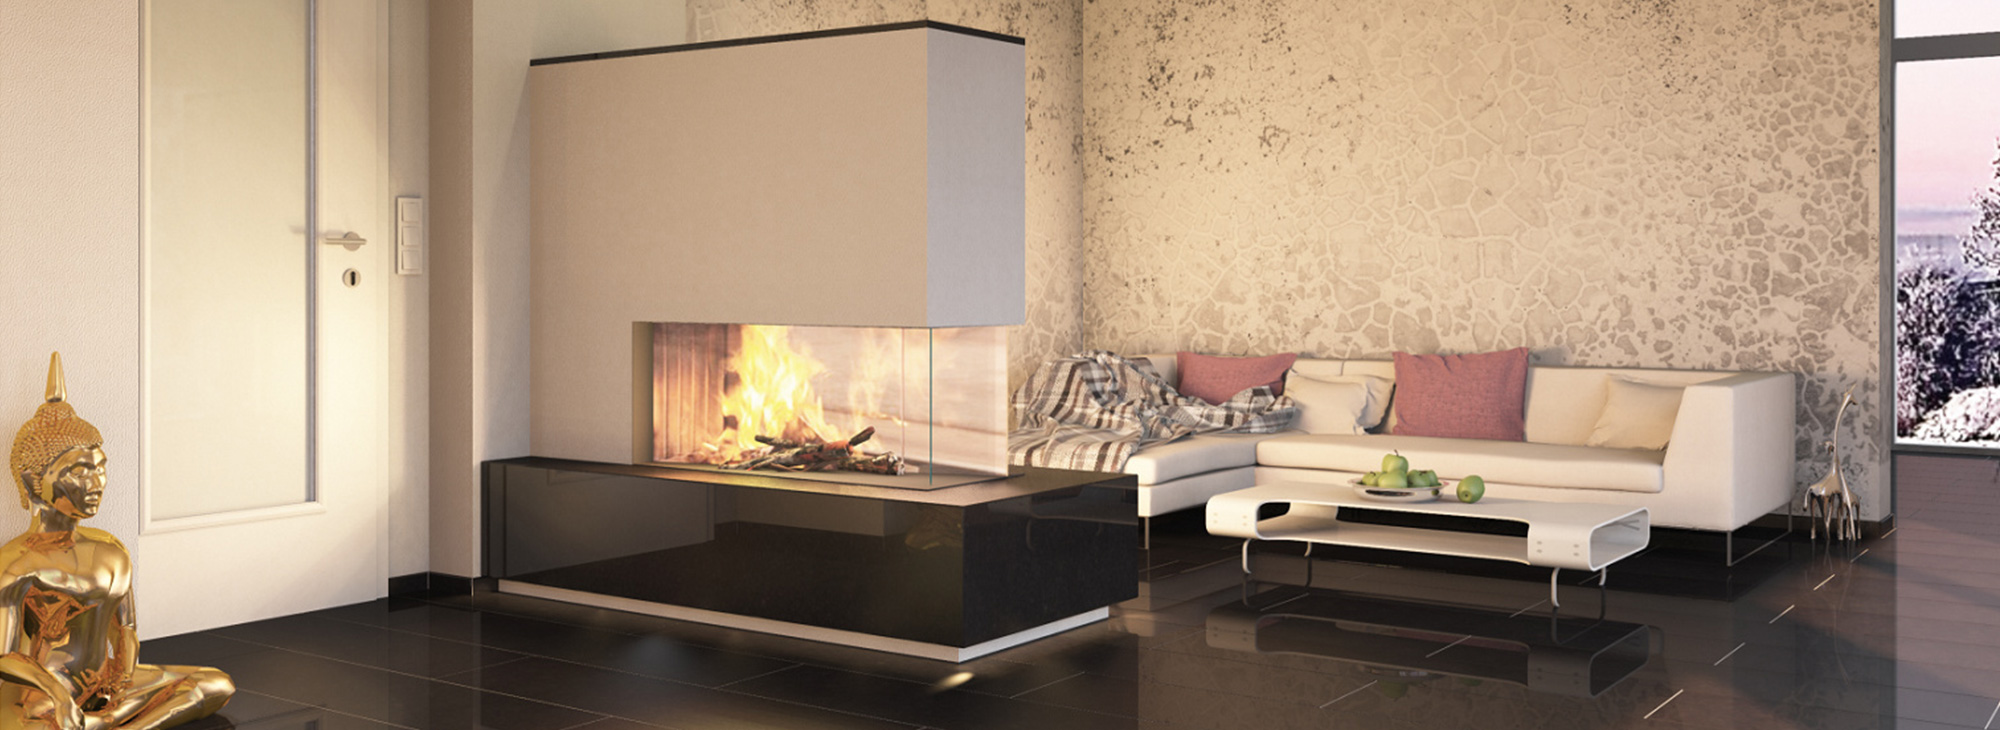 SILCAHEAT® 600C is an innovative board for easy and fast assembling of fireplaces.